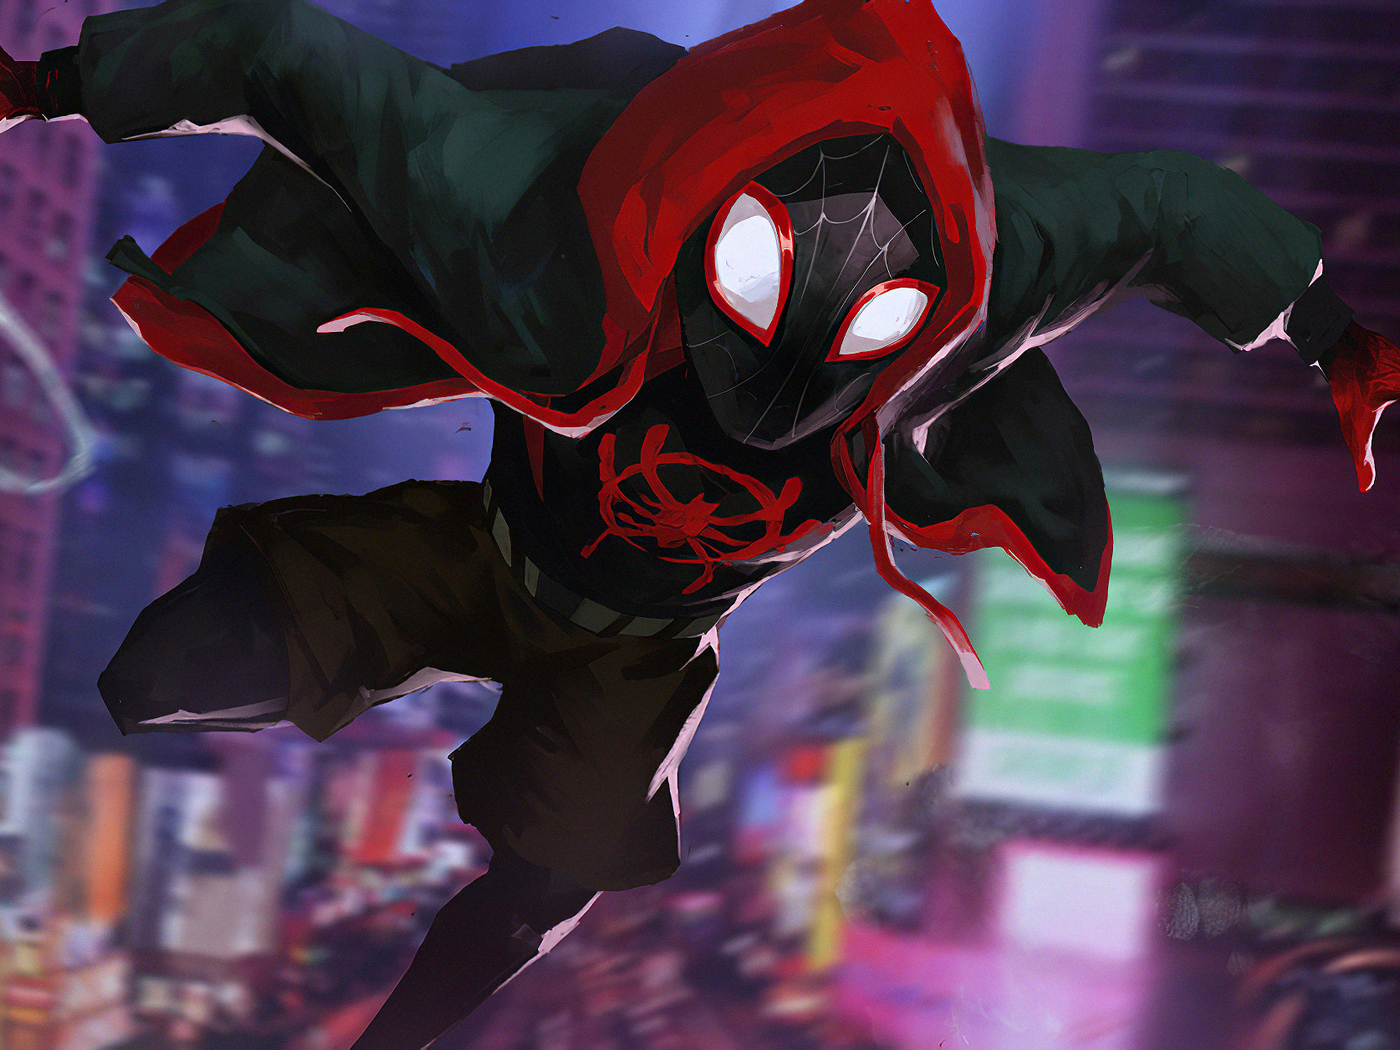 spiderman-on-the-way-3a.jpg